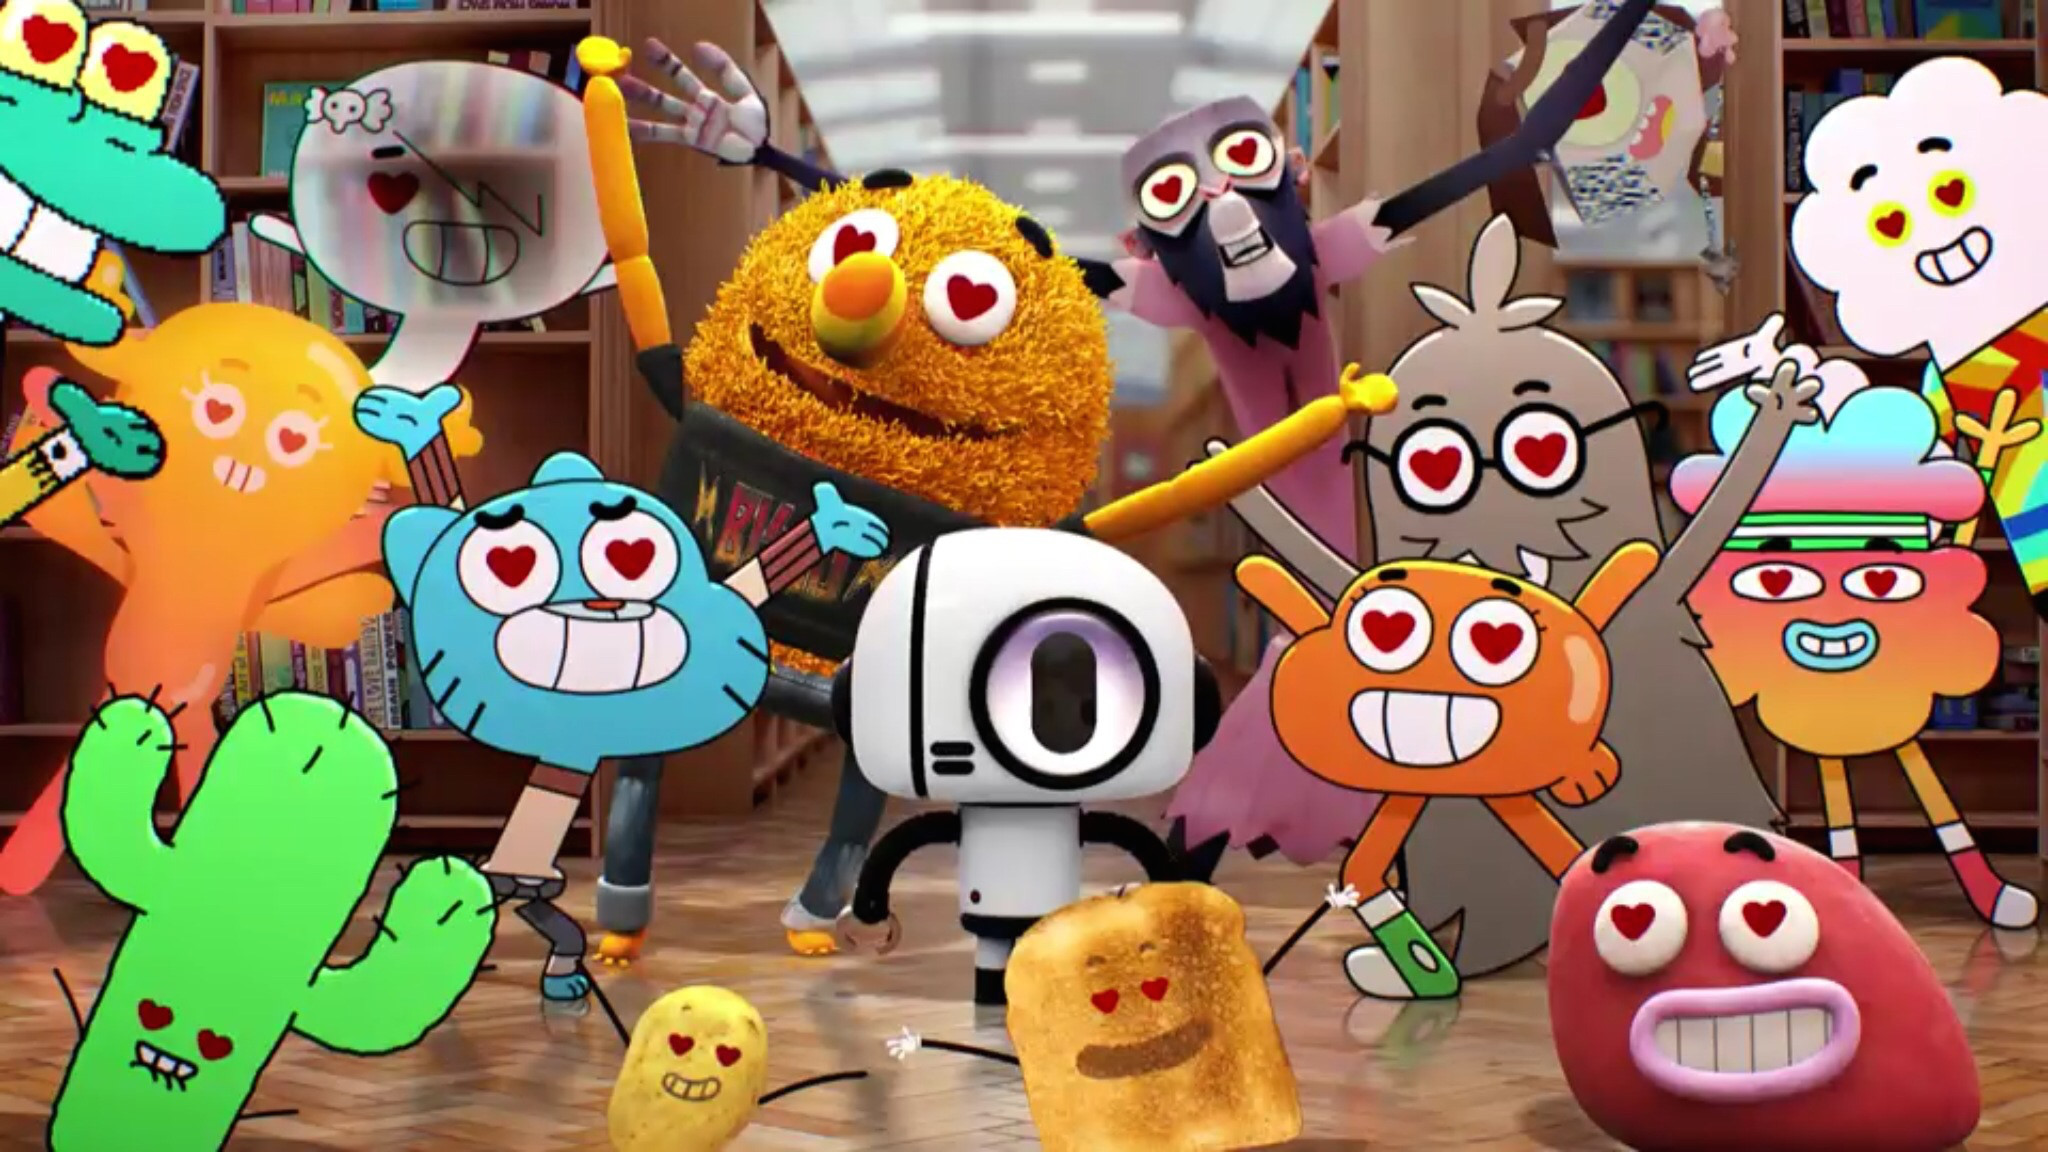 Candy Falls Live Wallpaper The Amazing World Of Gumball Wallpapers 81 Images